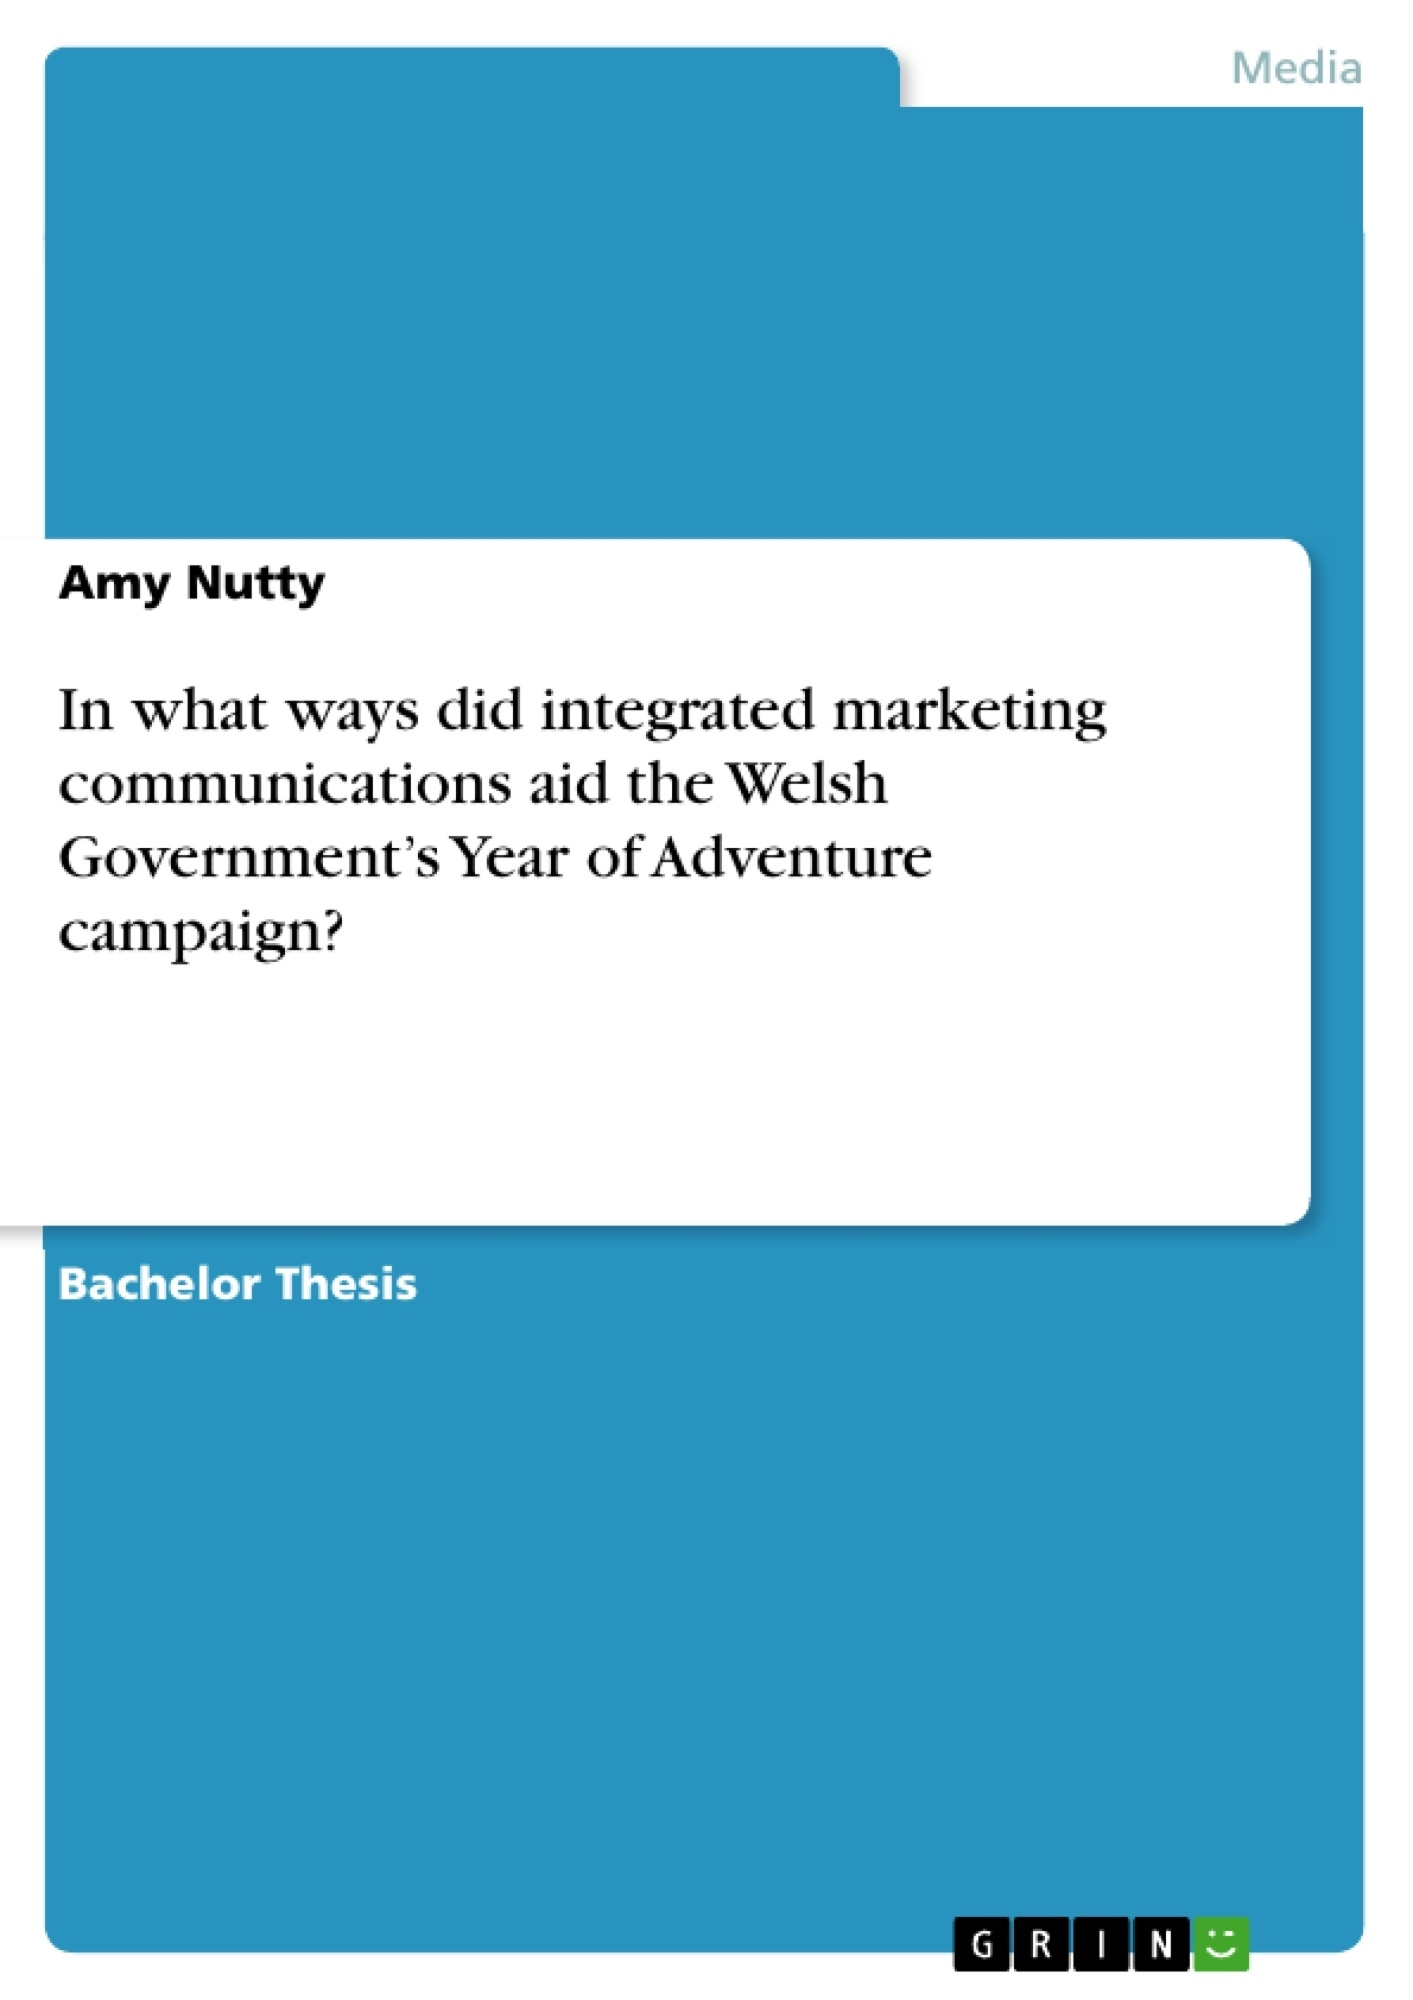 Title: In what ways did integrated marketing communications aid the Welsh Government's Year of Adventure campaign?